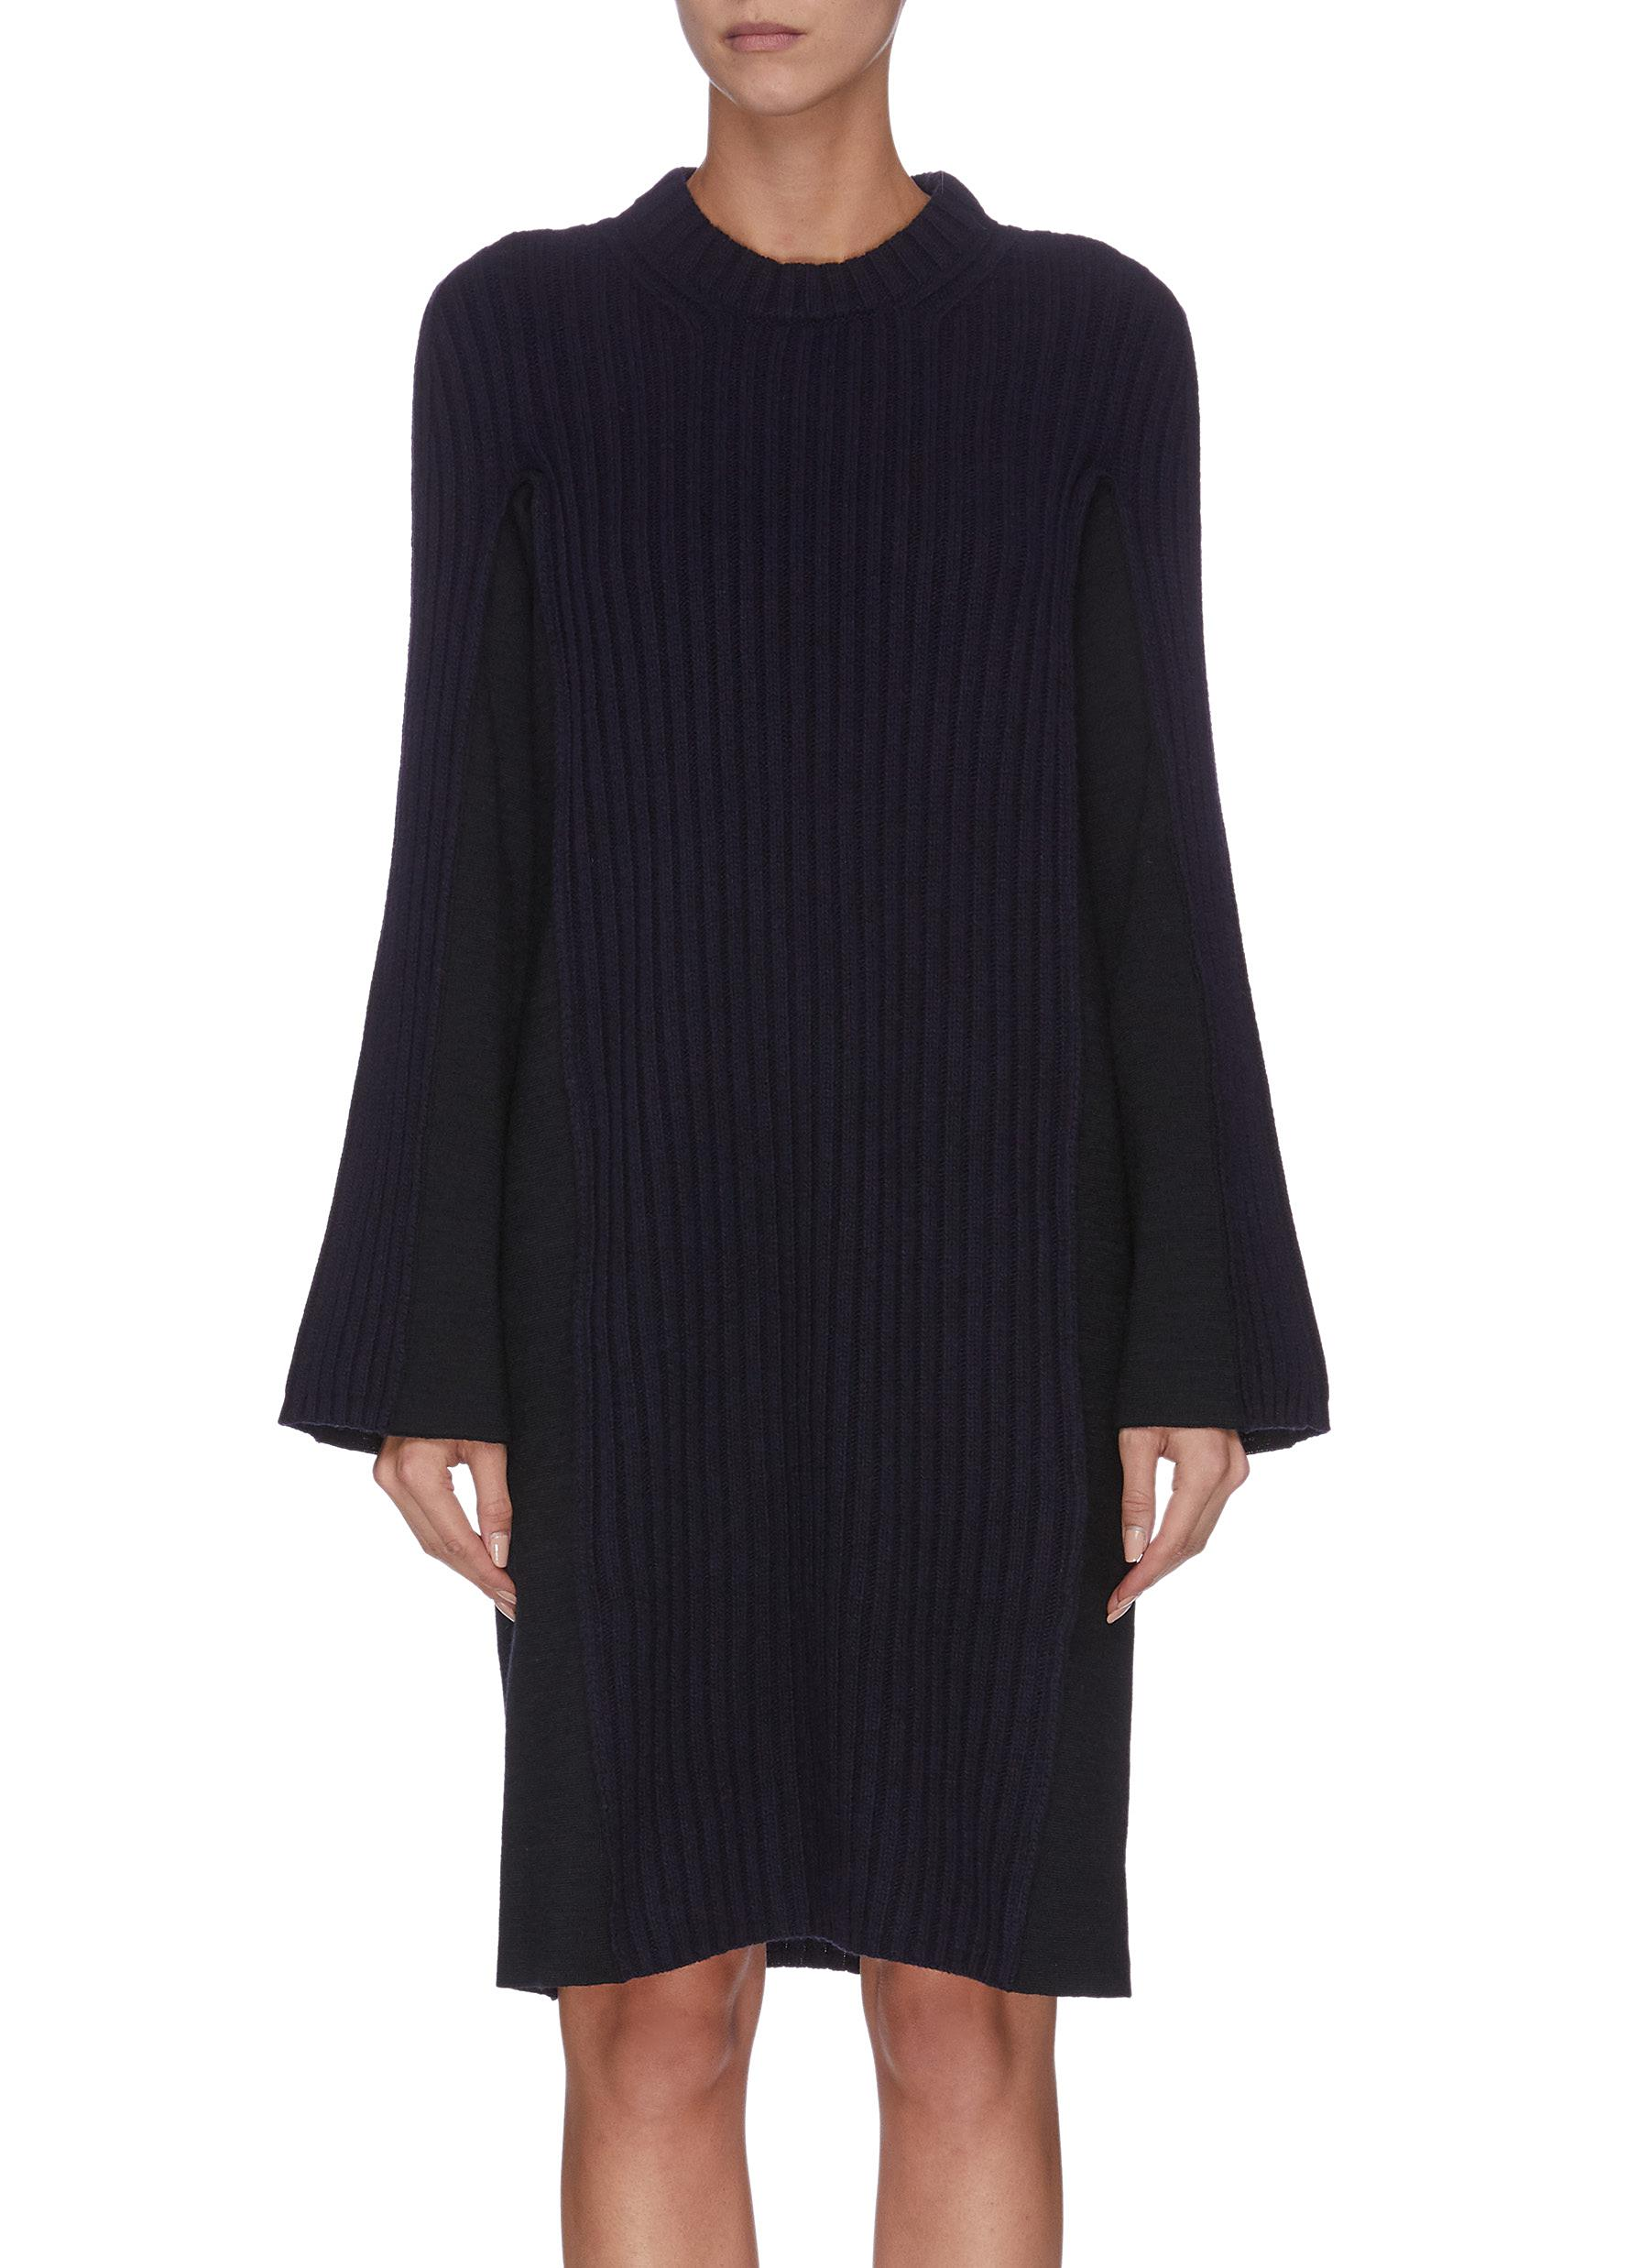 Flared sleeve panelled rib knit dress by Maison Margiela